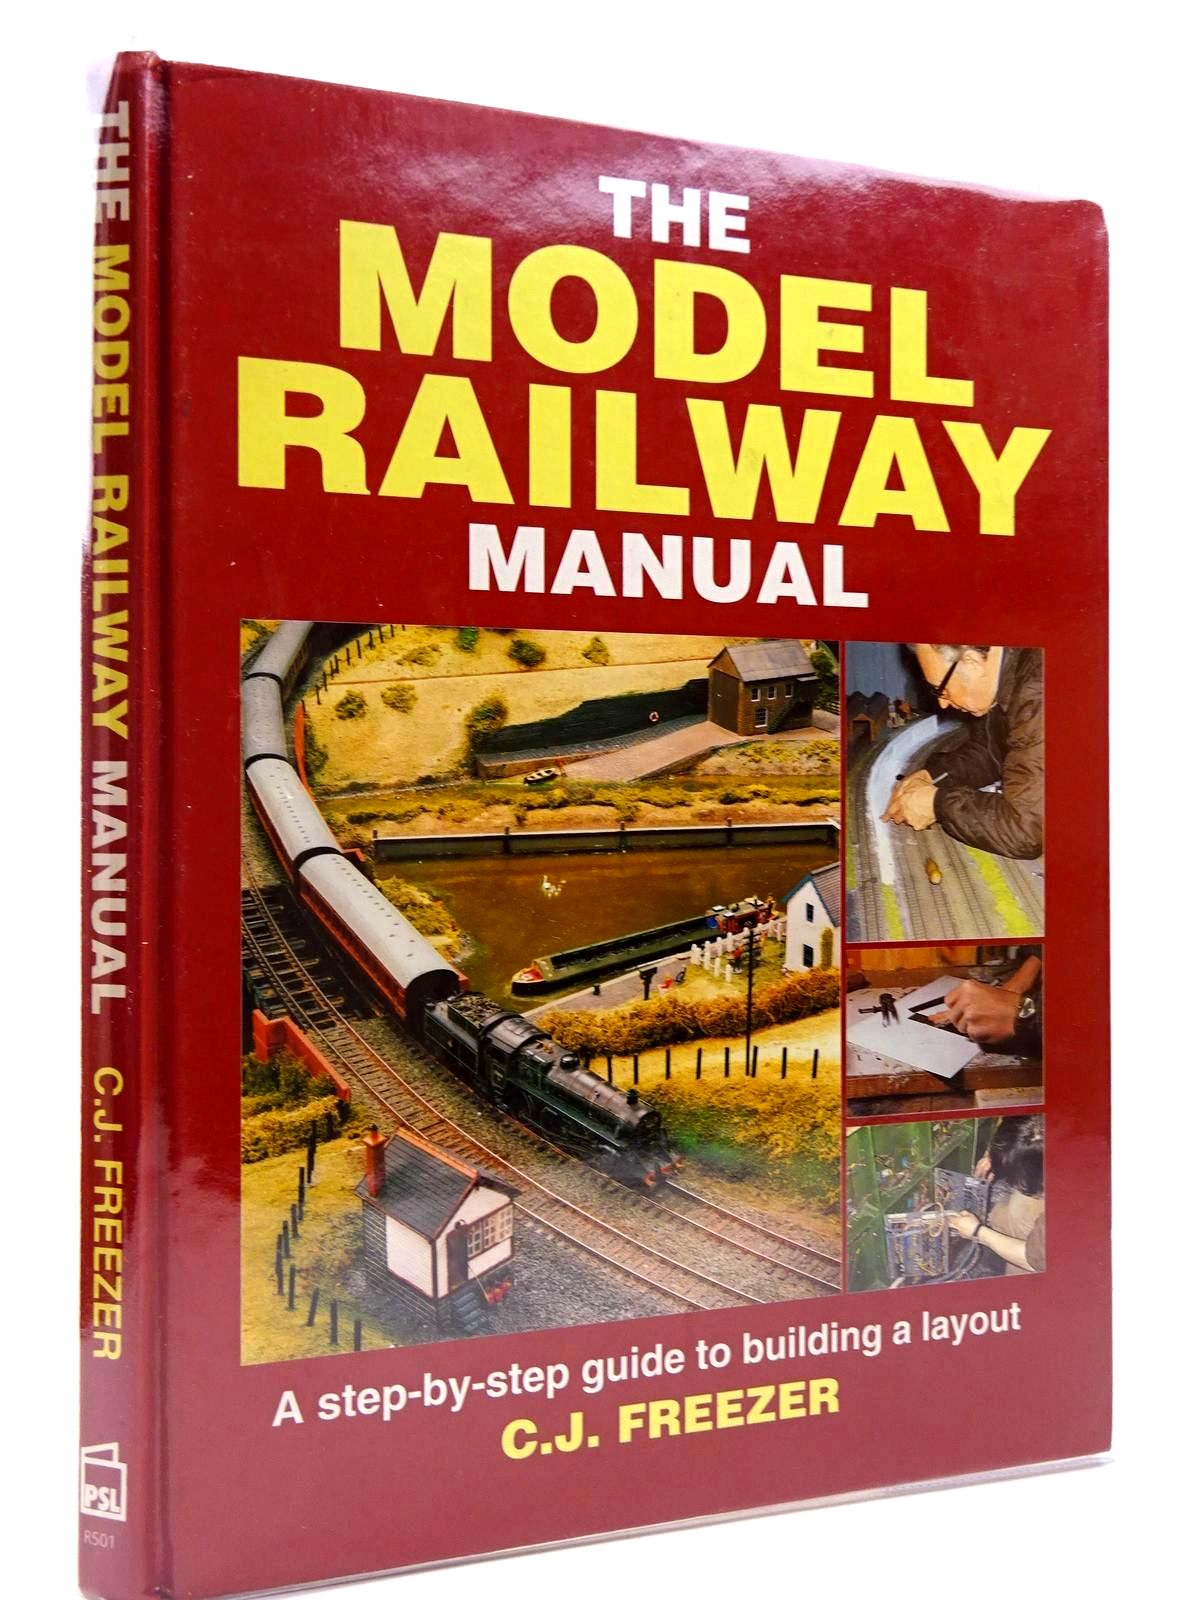 Photo of THE MODEL RAILWAY MANUAL written by Freezer, C.J. published by Patrick Stephens Limited (STOCK CODE: 2130991)  for sale by Stella & Rose's Books